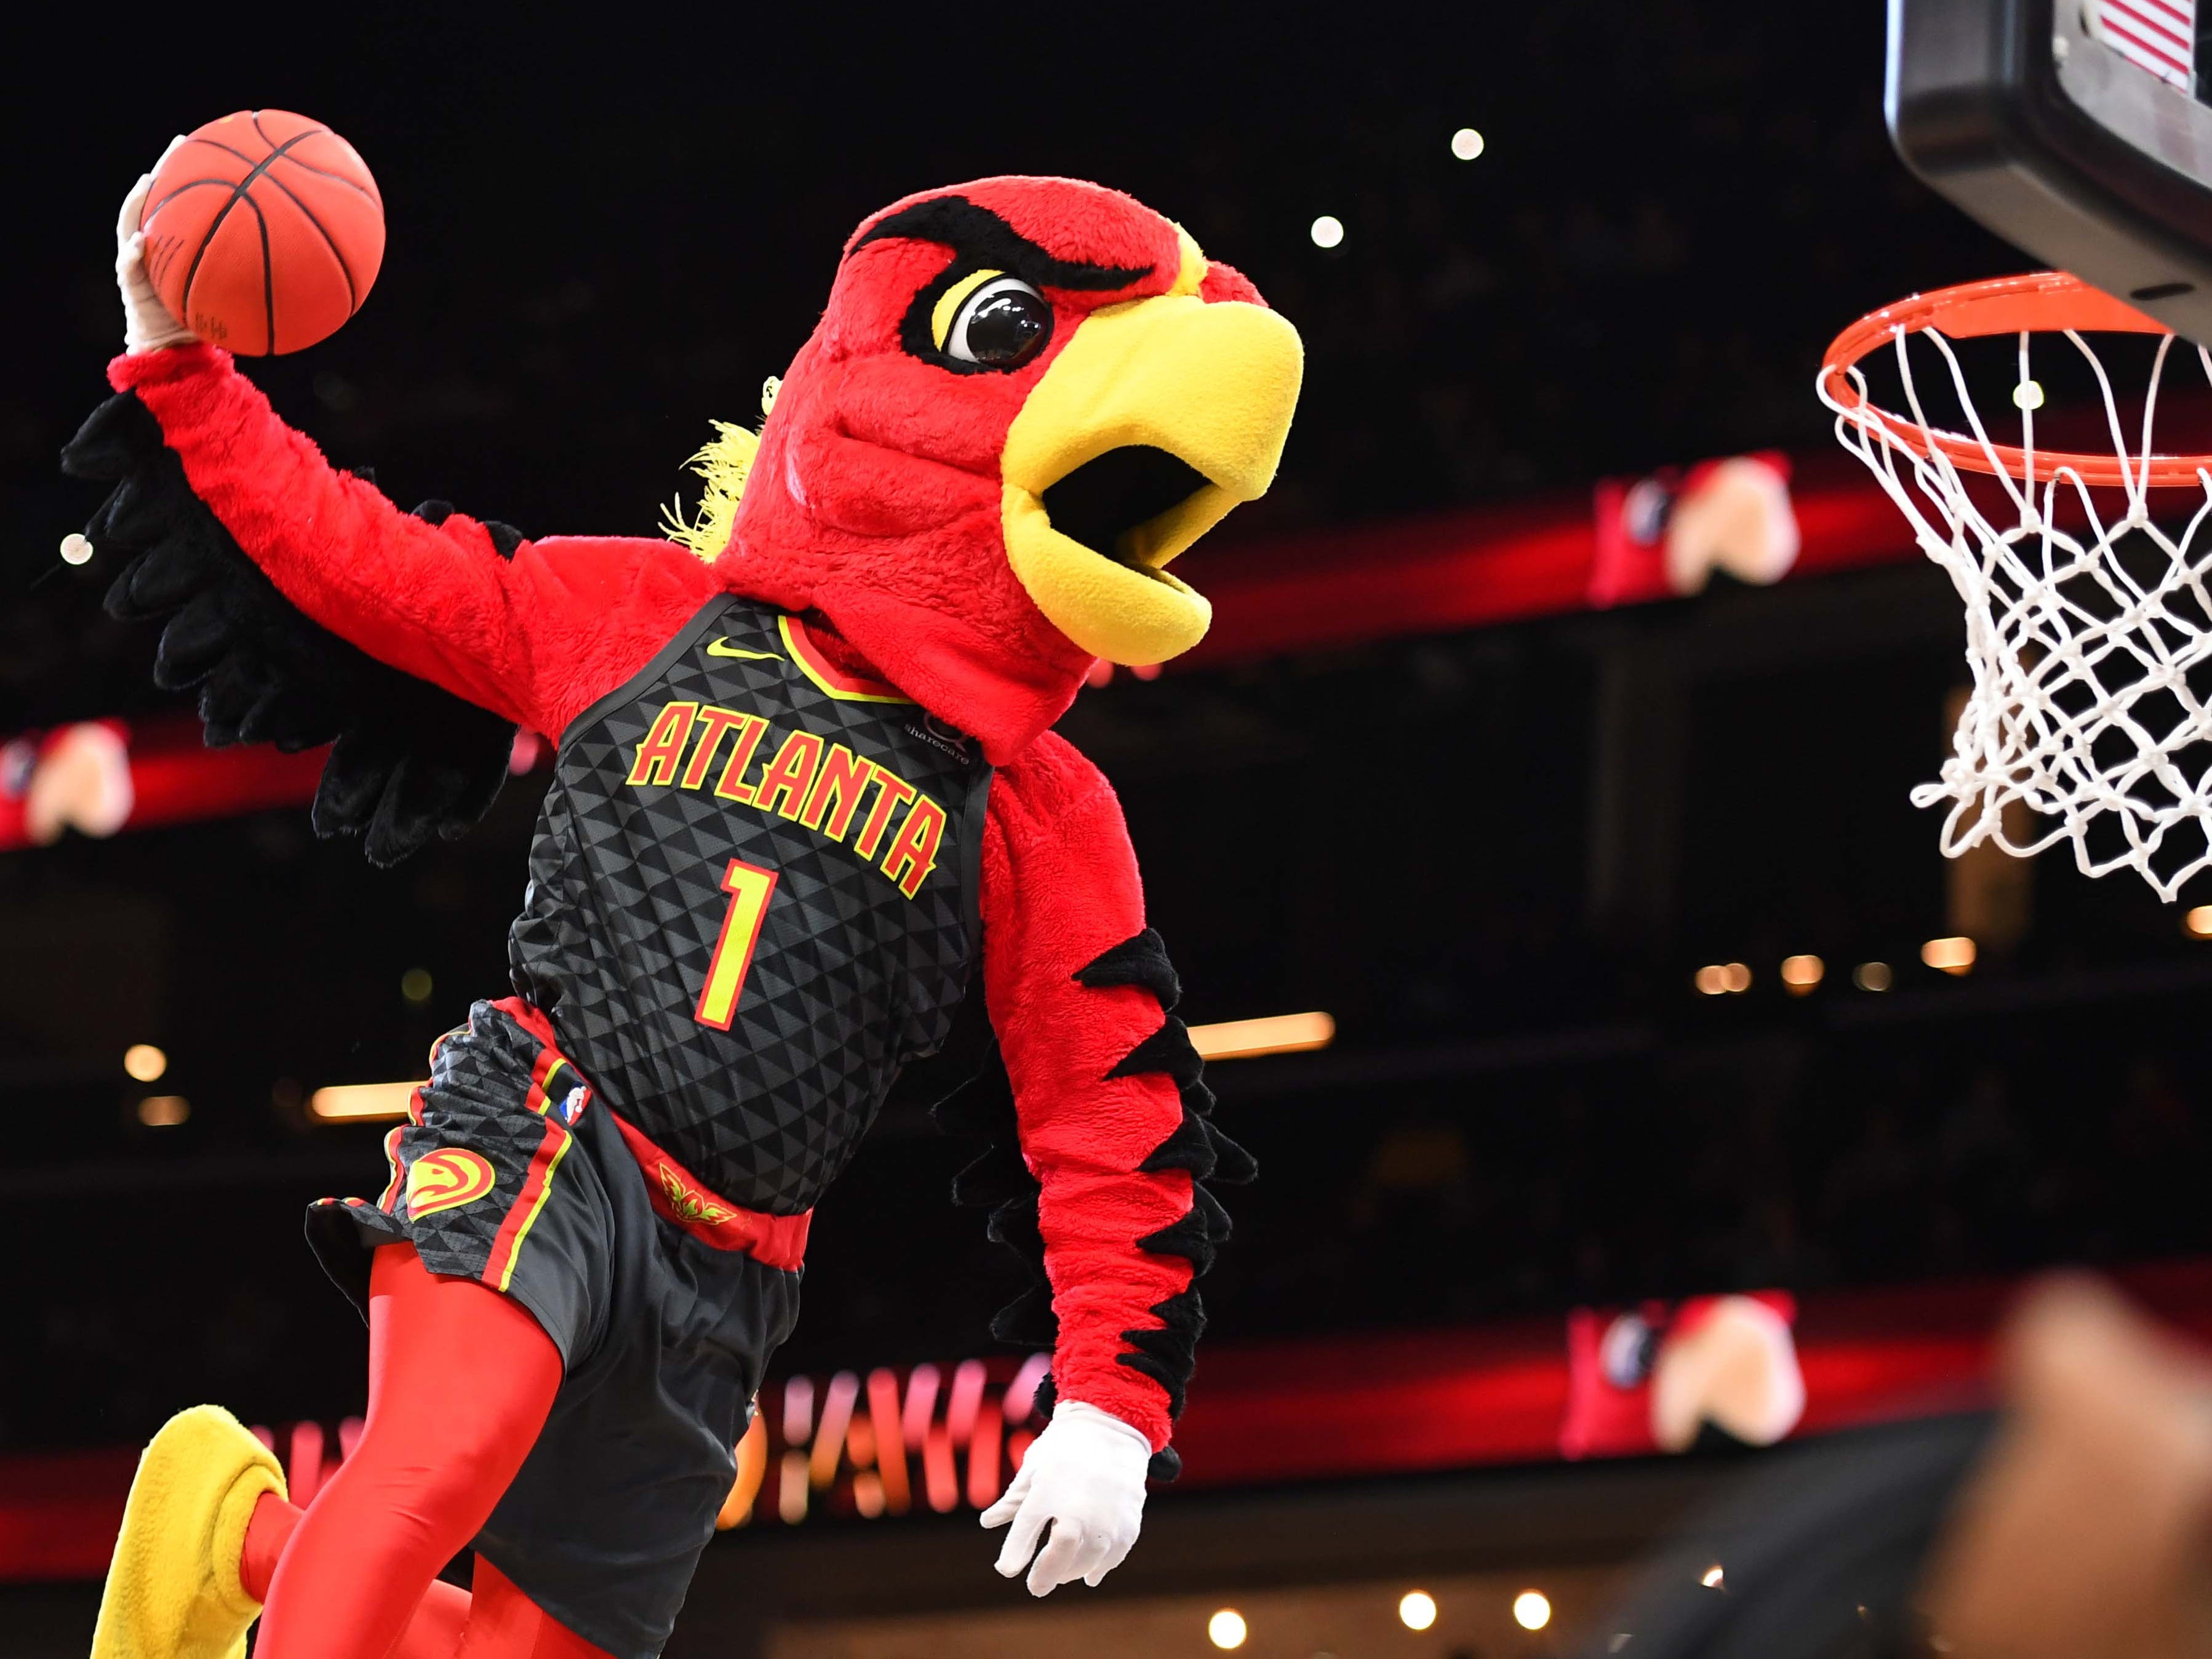 Dec. 8: Atlanta mascot Harry the Hawks throws down a soaring dunk during a stop in play against the Nuggets.